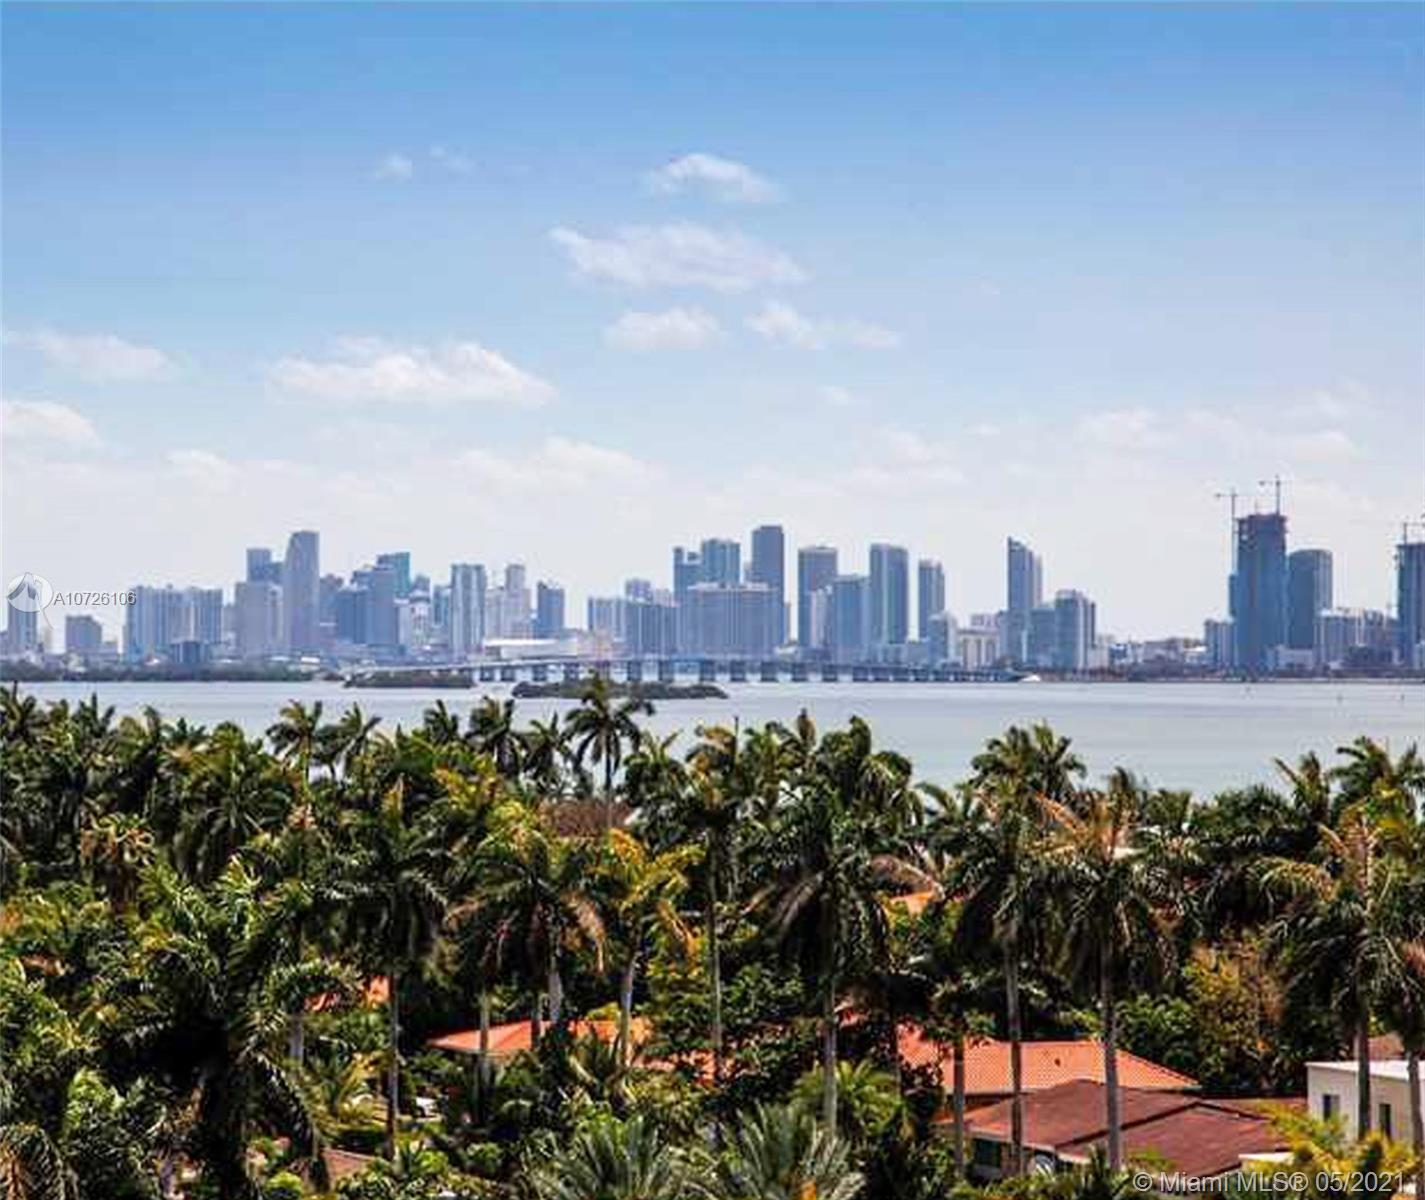 Unbelievable deal! Amazing floor plan,1552 sq ft, corner unit with ocean views from each room in luxury 360 building on the water. Light and bright, 2 huge balconies with Miami Skyline. 2 garage parking plus valet and guest parking, 5 star amenities including 2 heated pools, jacuzzi, gym, sauna, concierge, 24/7 security. True luxury resort style living. Marina for your Yacht. Fully equipped open Italian style kitchen with ss appliances and granite countertops. Washer and dryer inside Huge panoramic floor to ceiling impact proof windows and sliding balcony doors. South exposure.